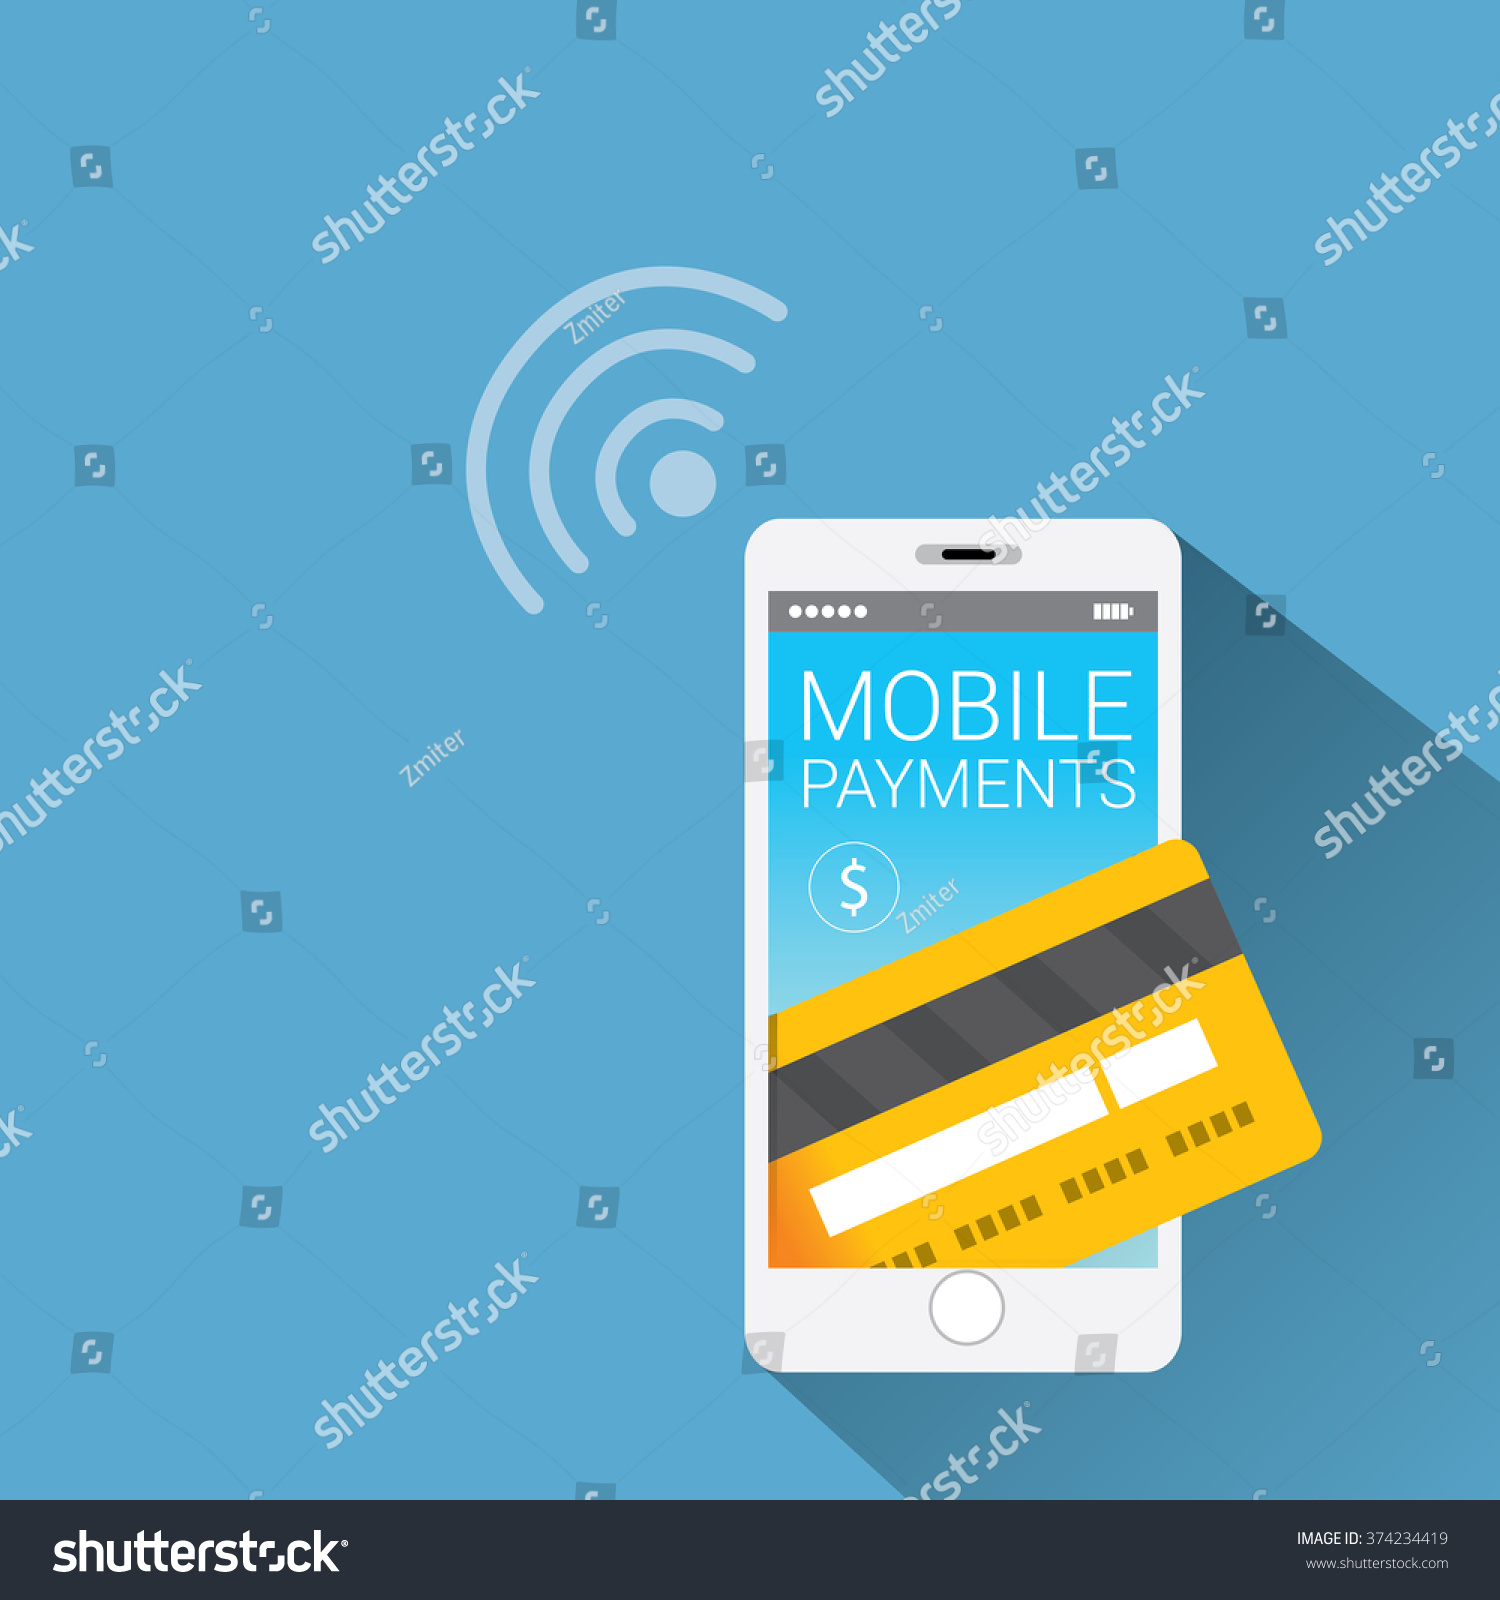 Flat design style vector illustration of modern smartphone with processing of mobile payments from credit card on the screen Internet banking concept wireless money transfer